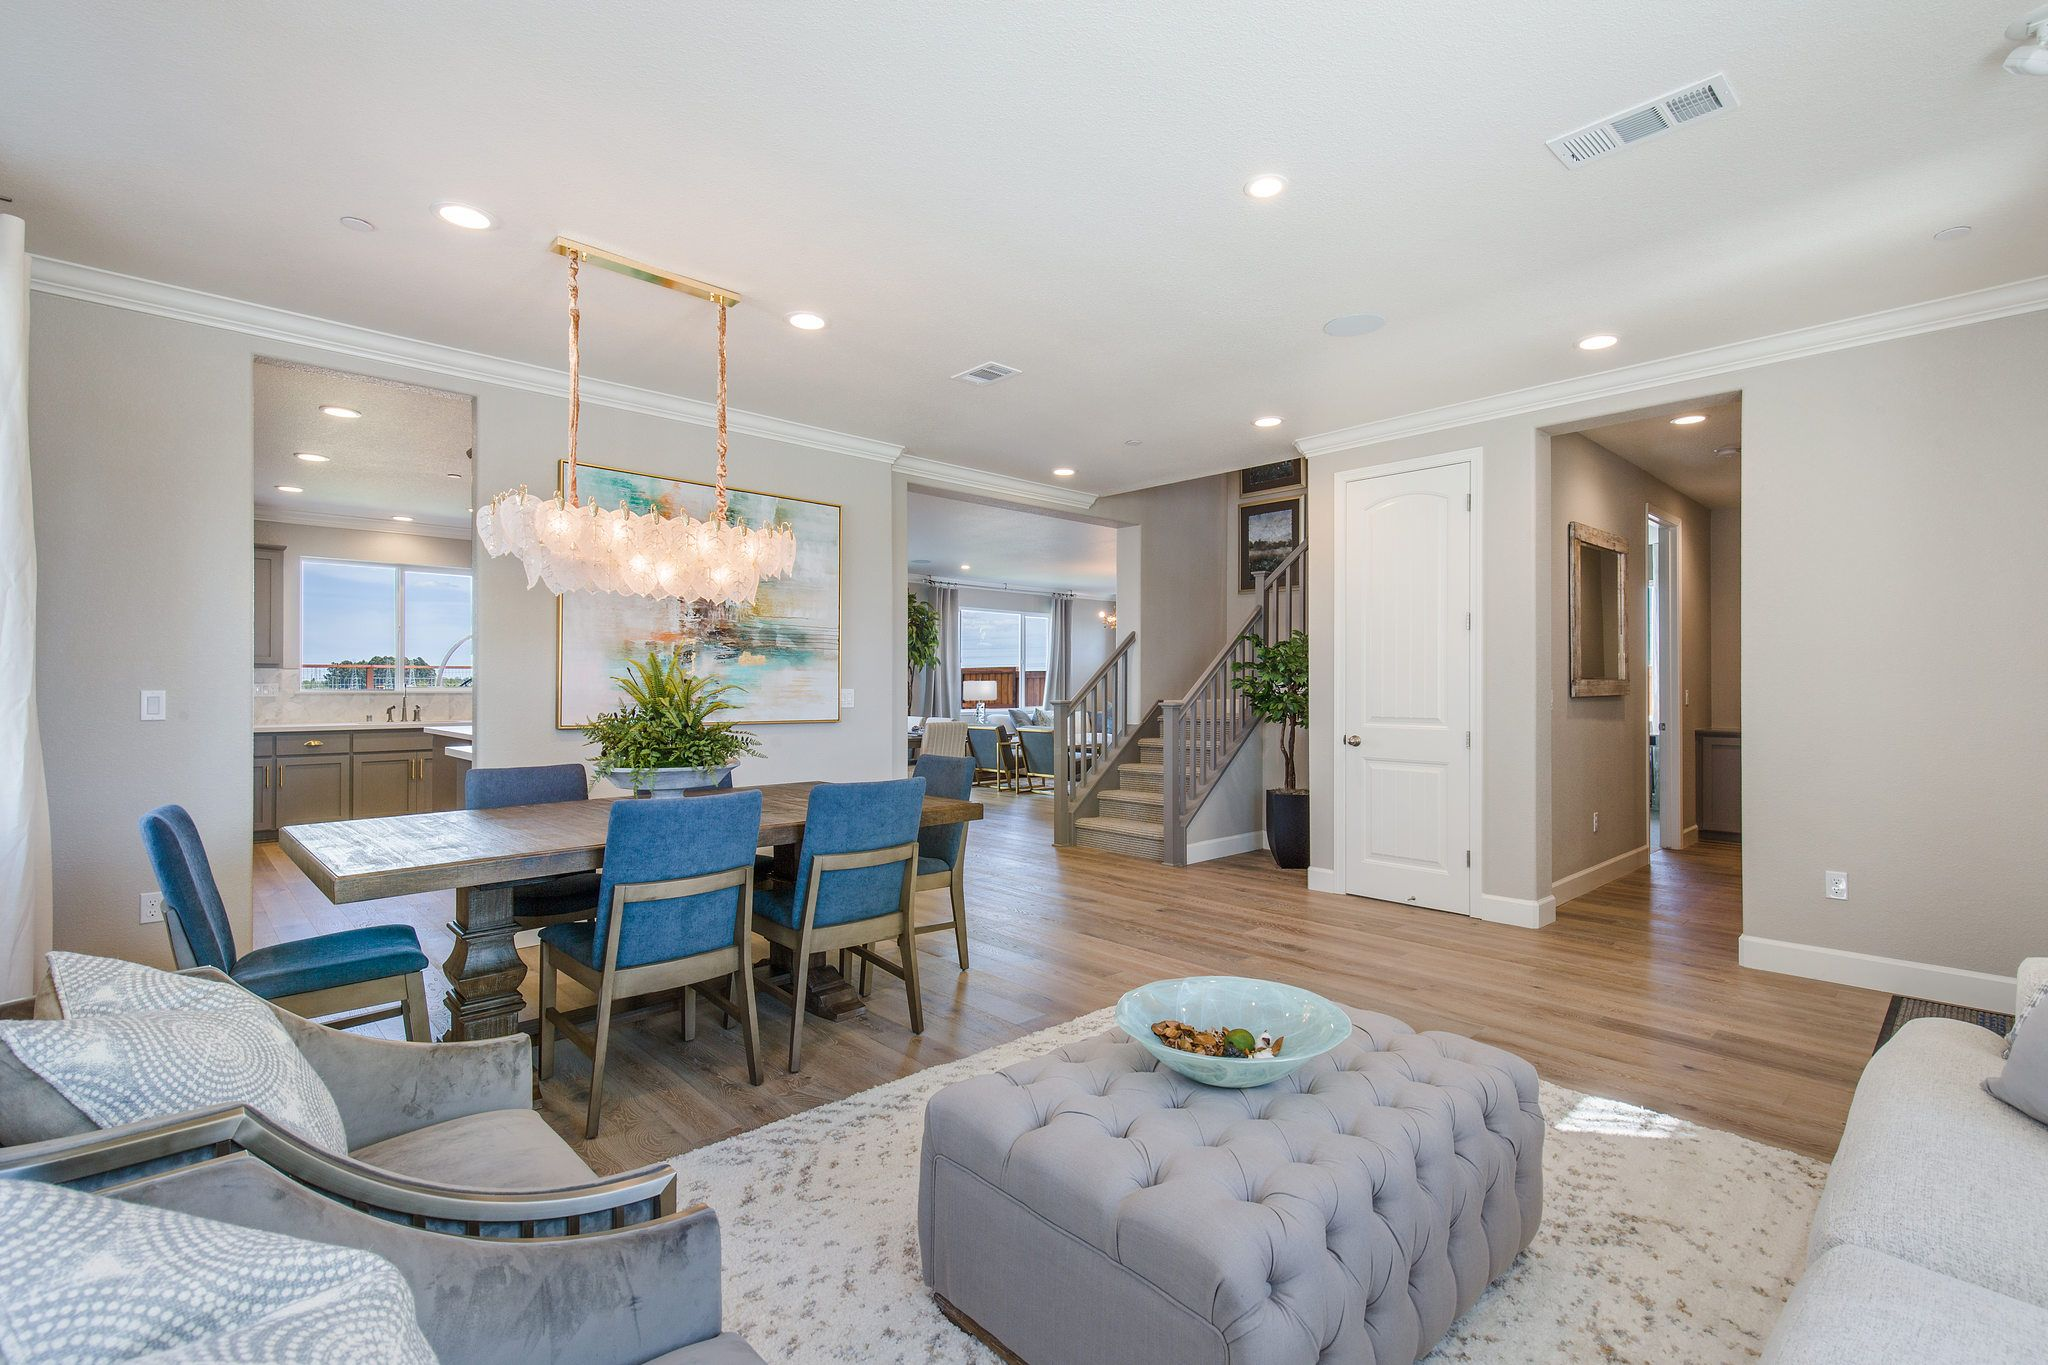 Living Area featured in the Cabral By Seeno Homes in Vallejo-Napa, CA